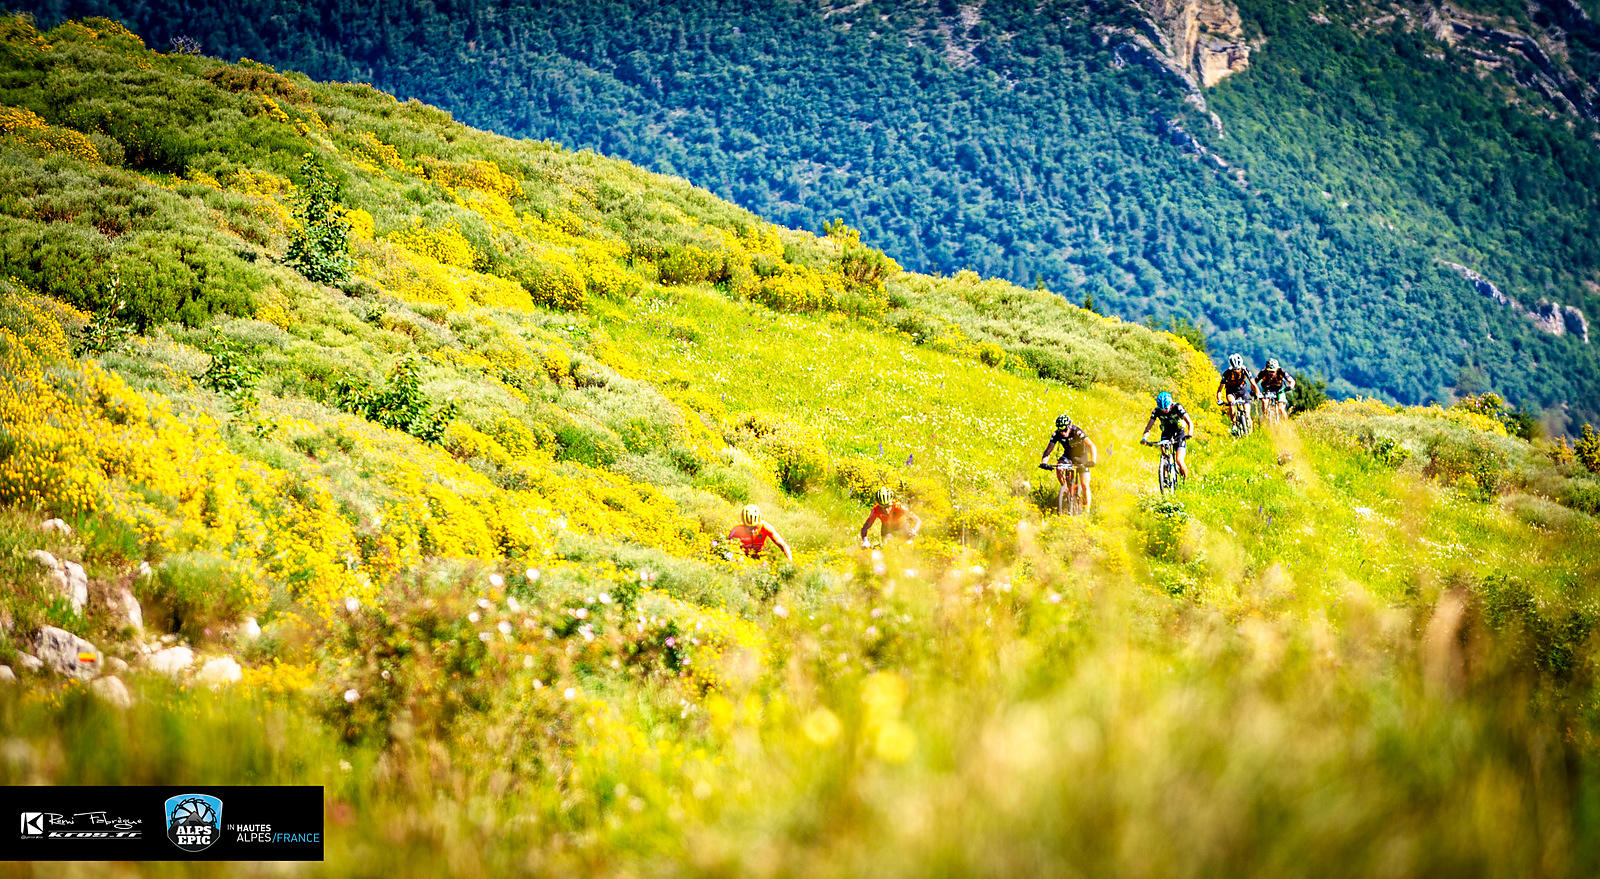 VendrediAlps_AgenceKros_RemiFABREGUE_(6_sur_19)